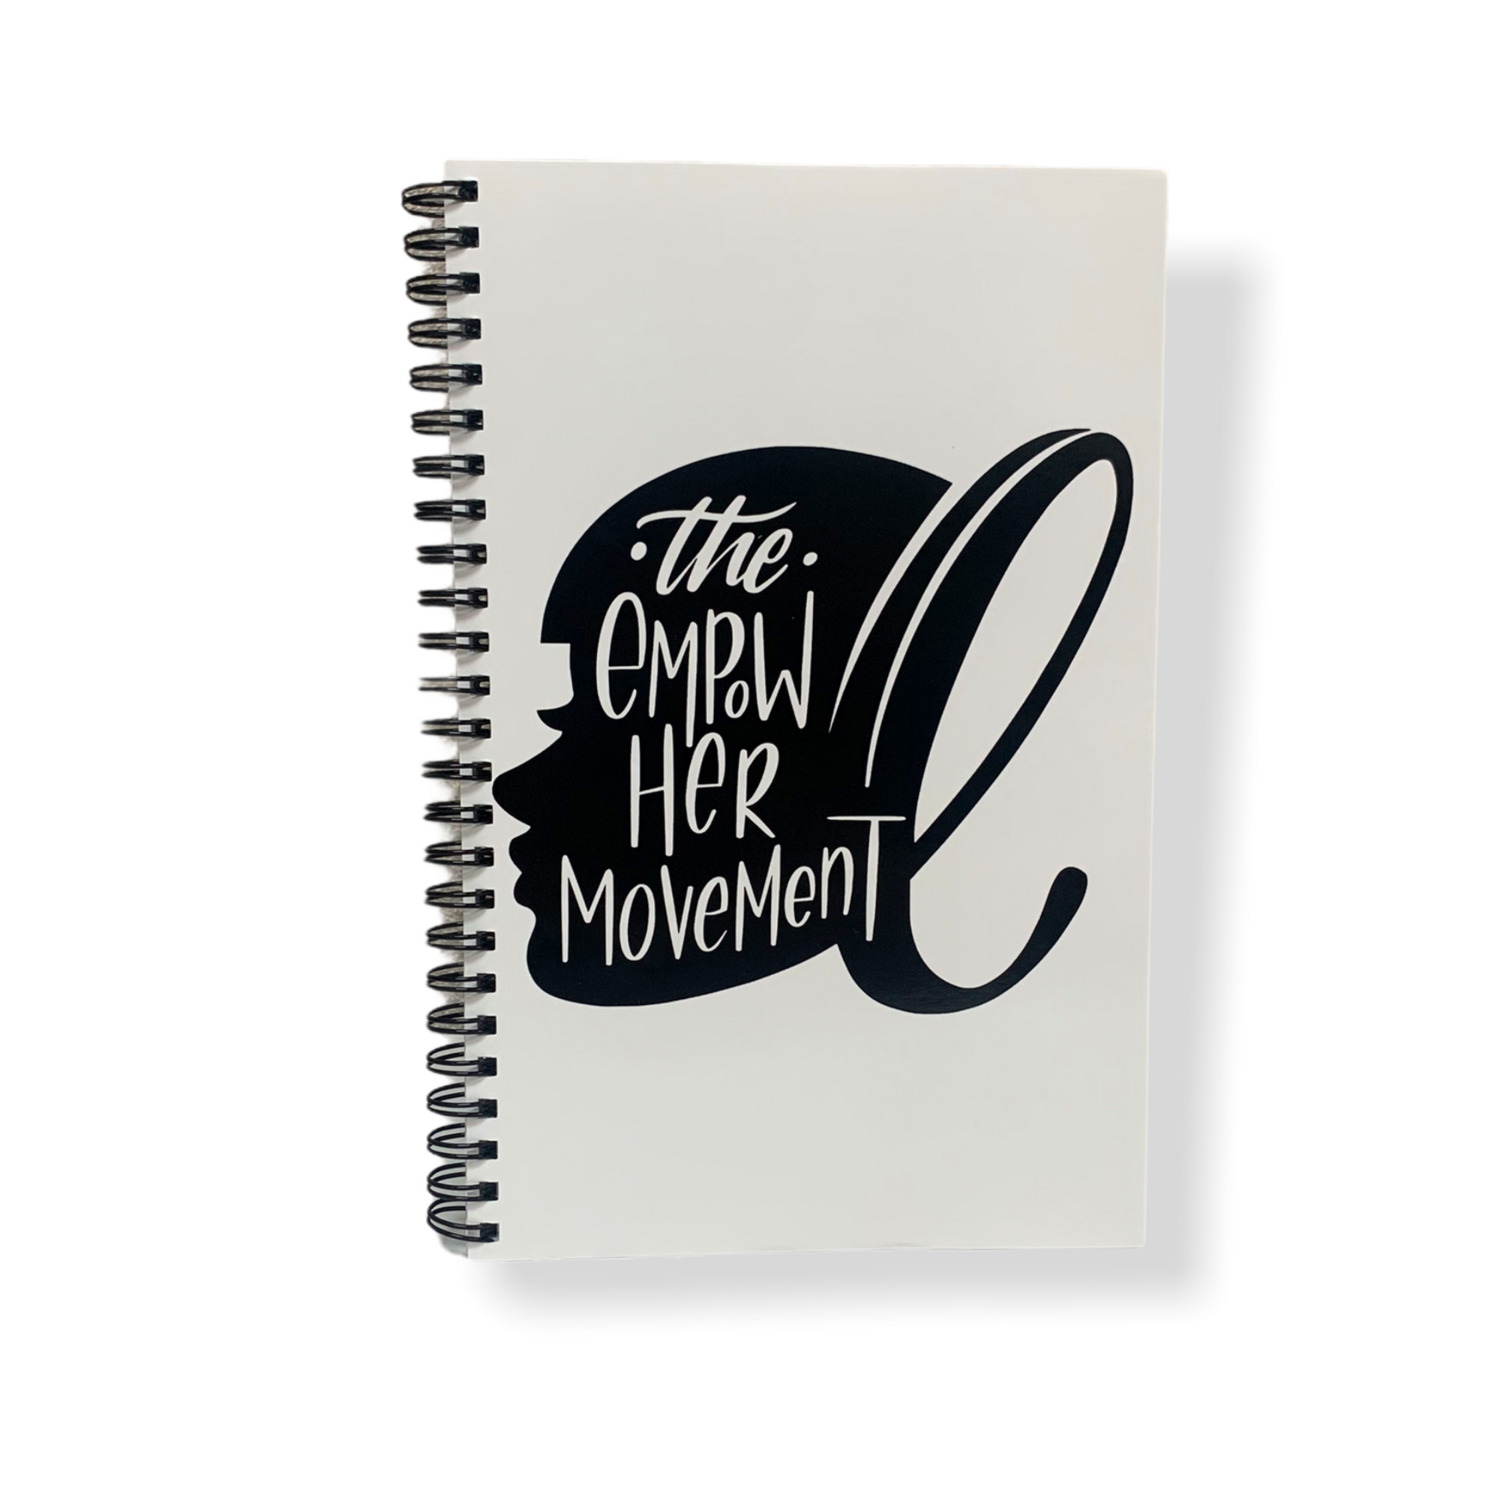 The EmpowHer Movement Journal